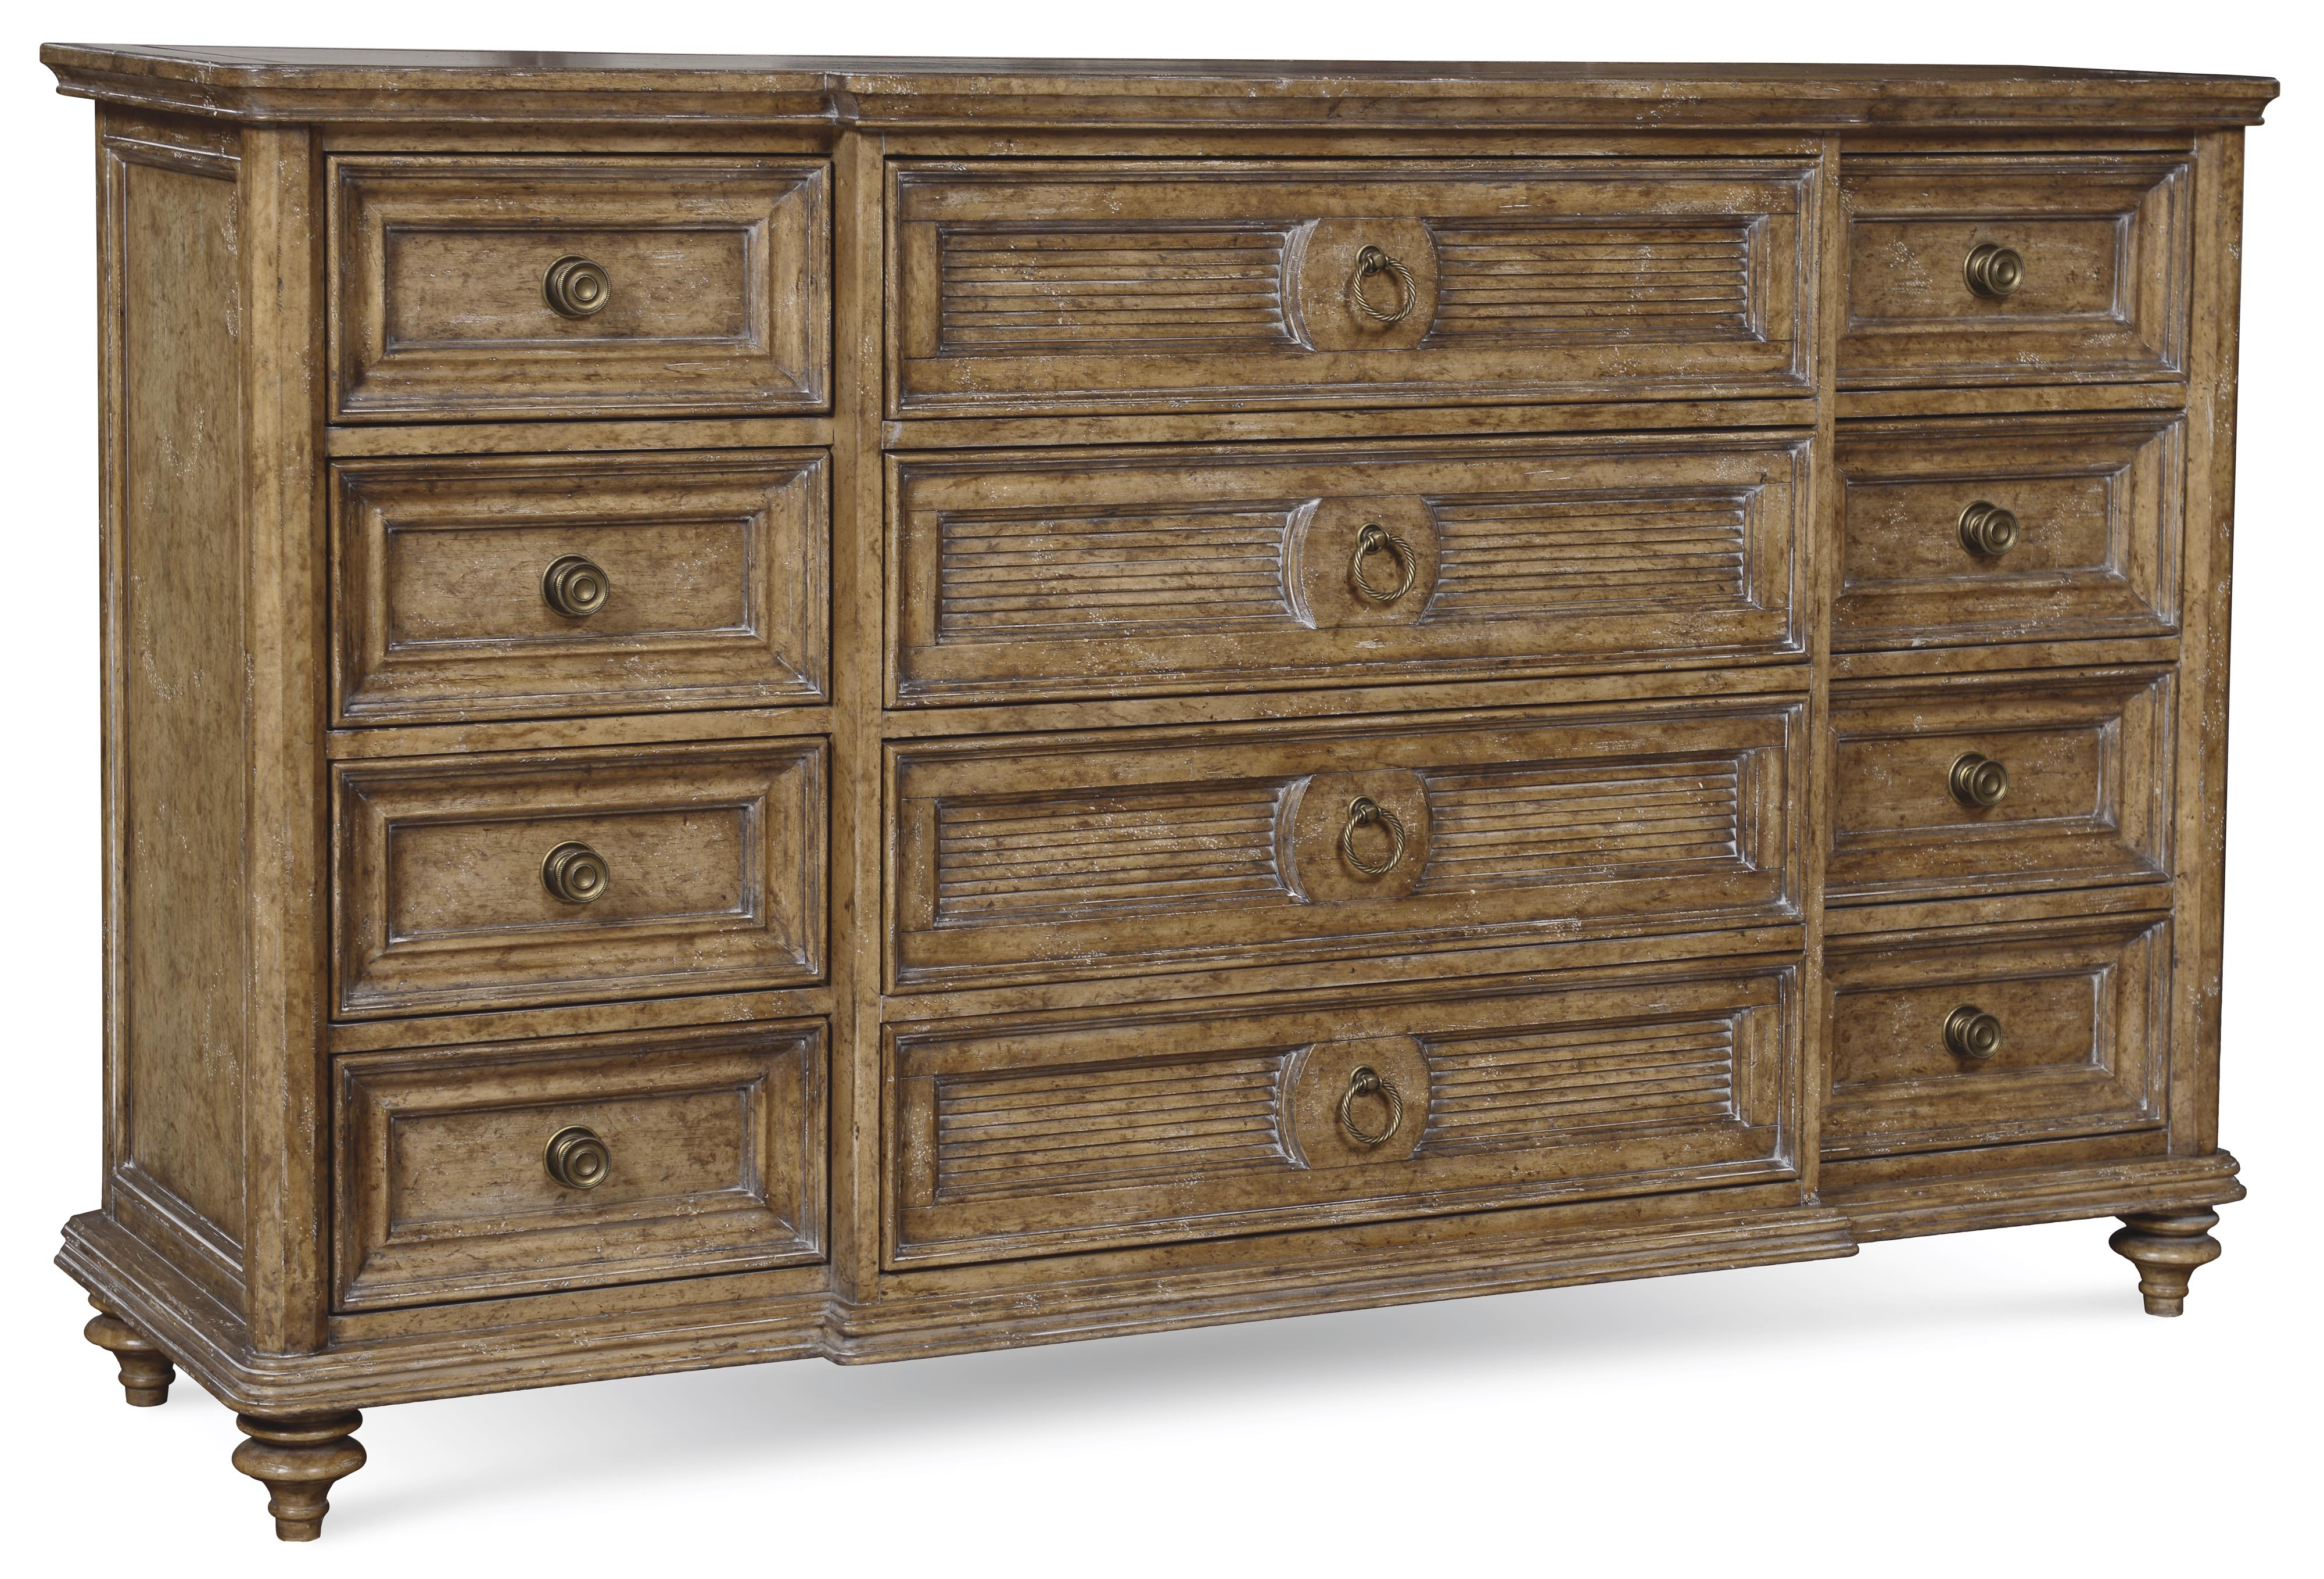 A.R.T. Furniture Inc Pavilion Dresser - Item Number: 229130-2608